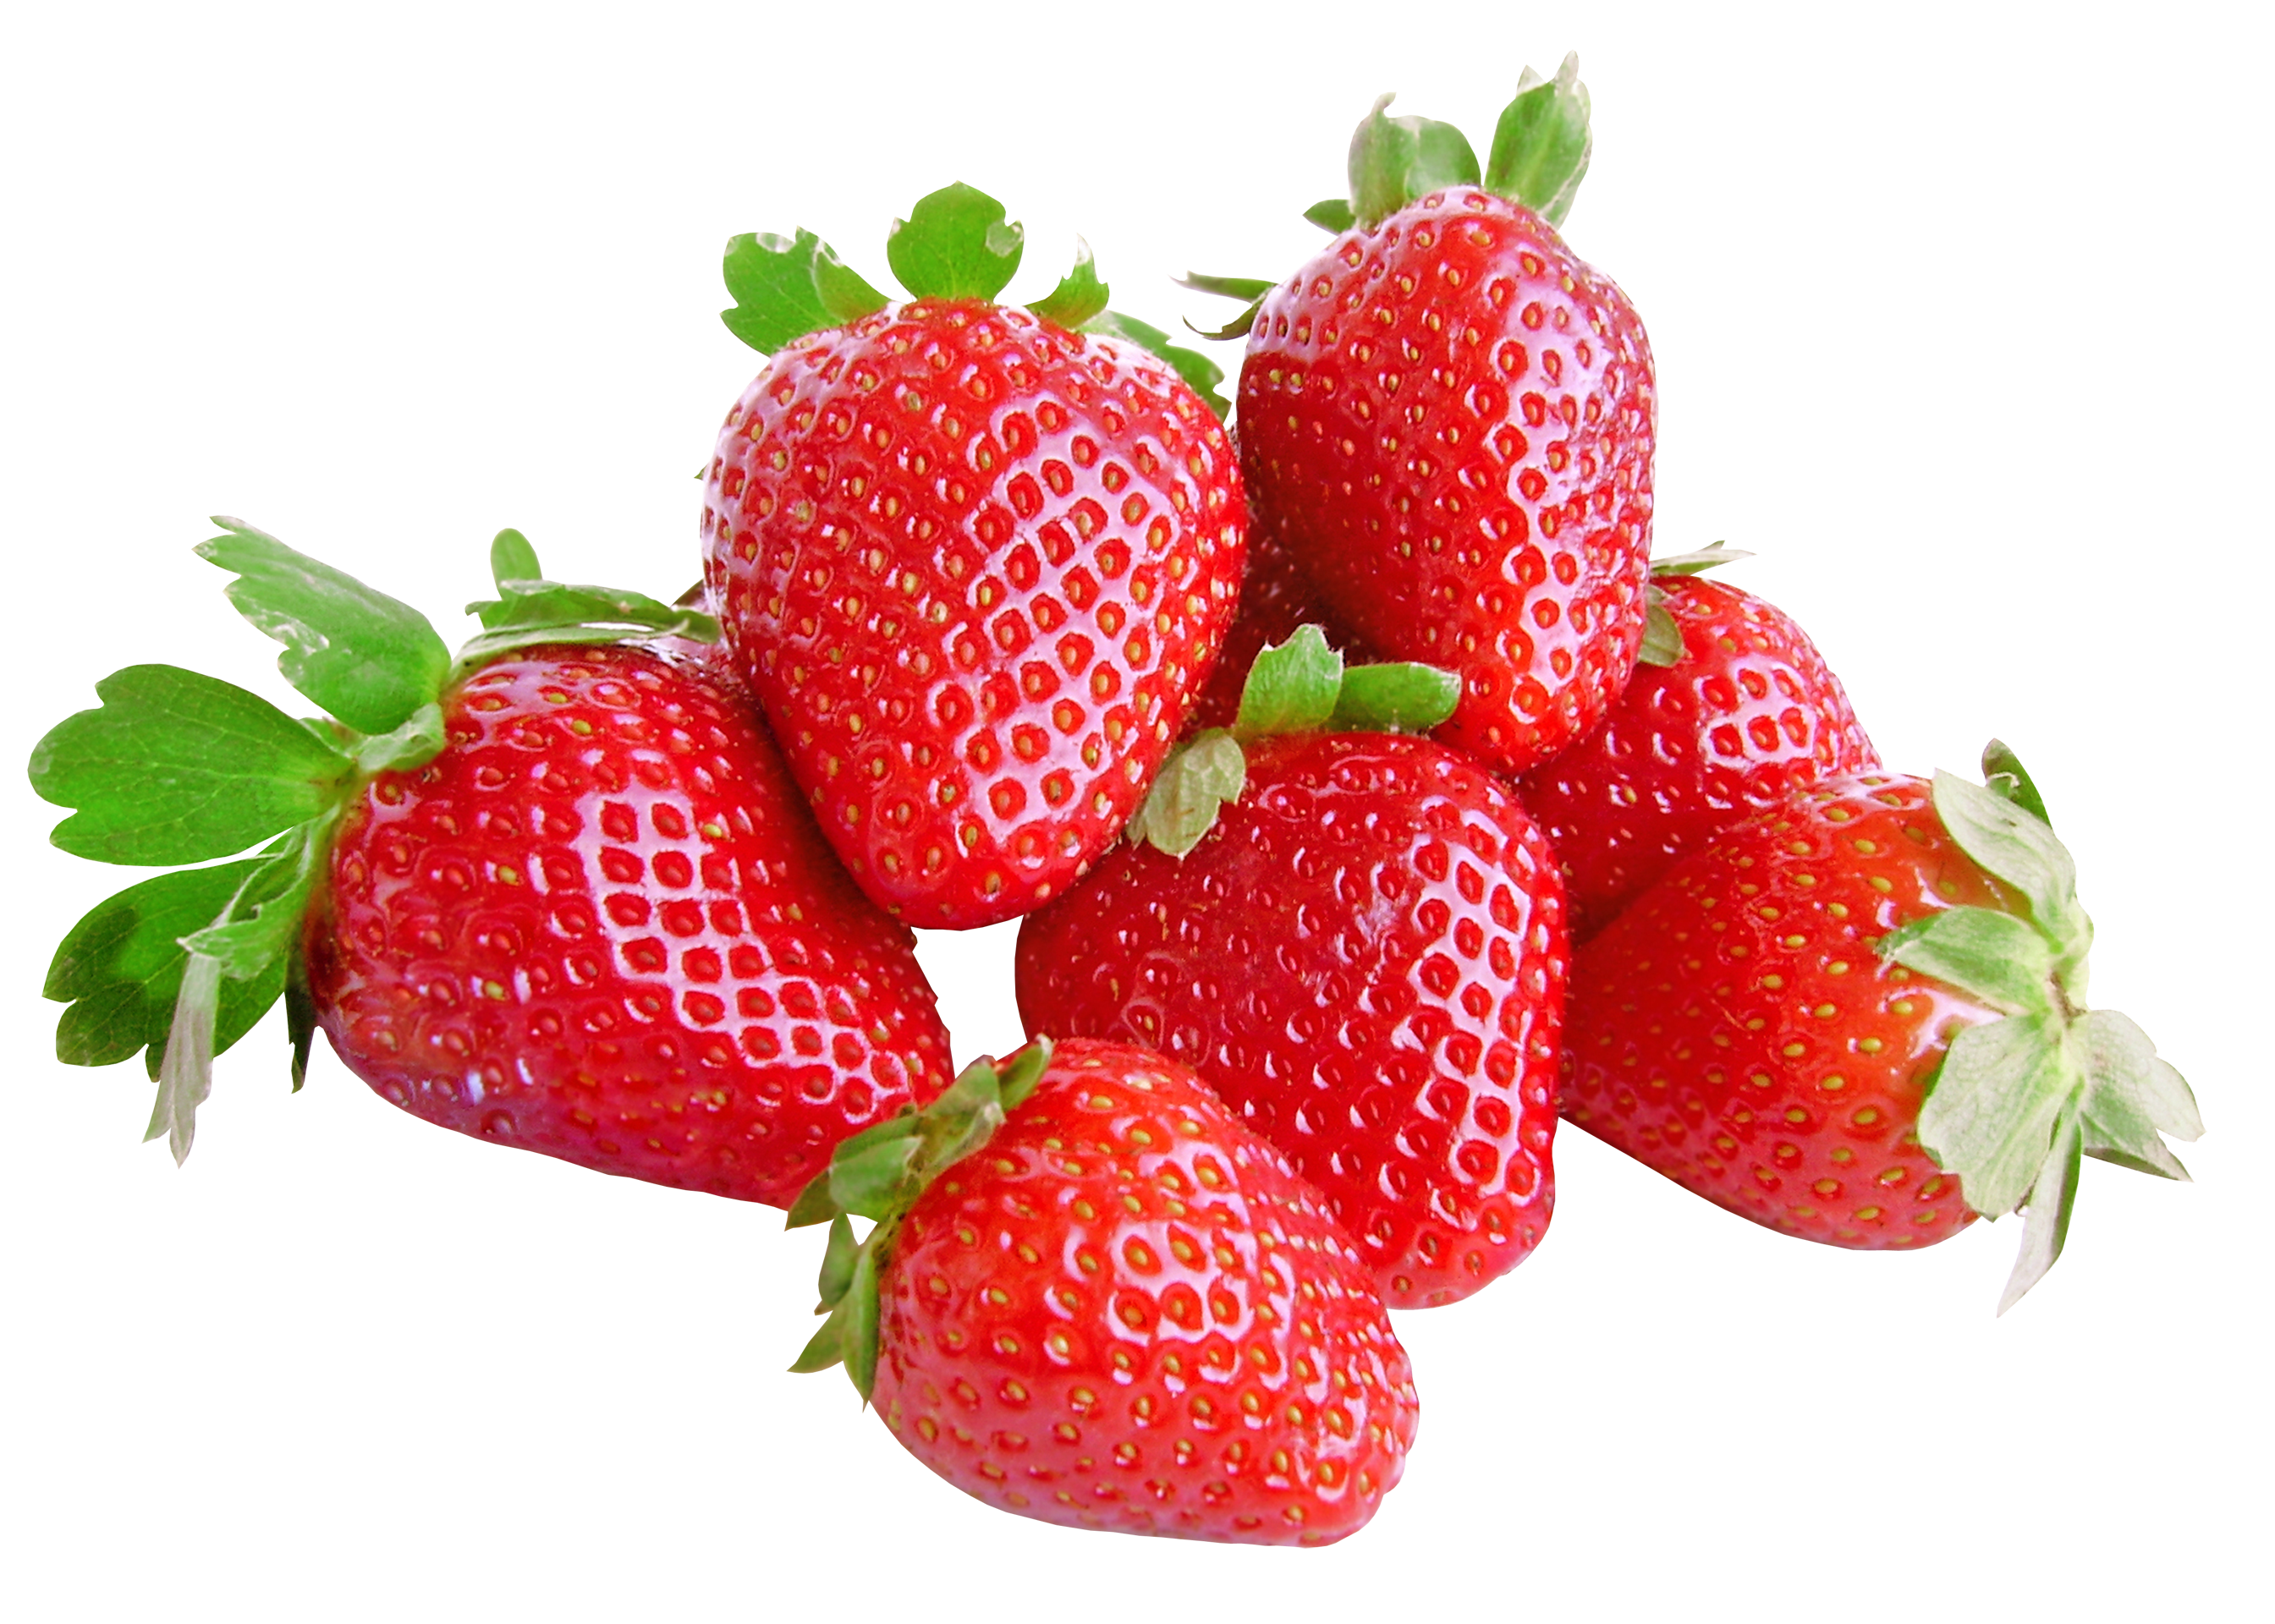 Strawberry Fruit Png image #2